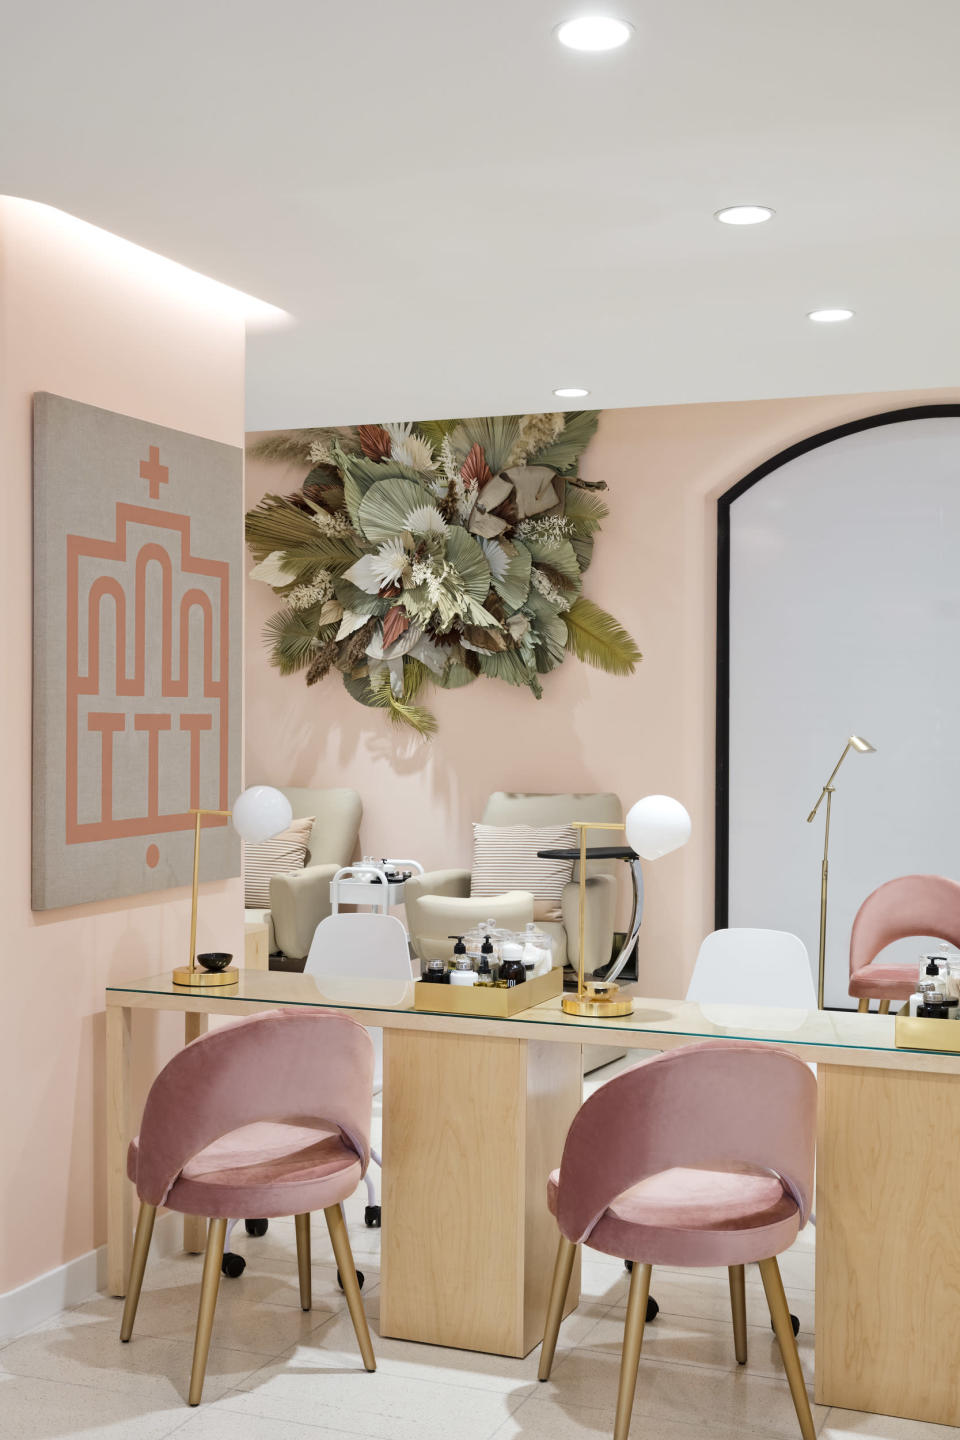 Services such as spa treatments, nails and brows are offered at Nordstrom's NYC flagship. - Credit: Courtesy Image.